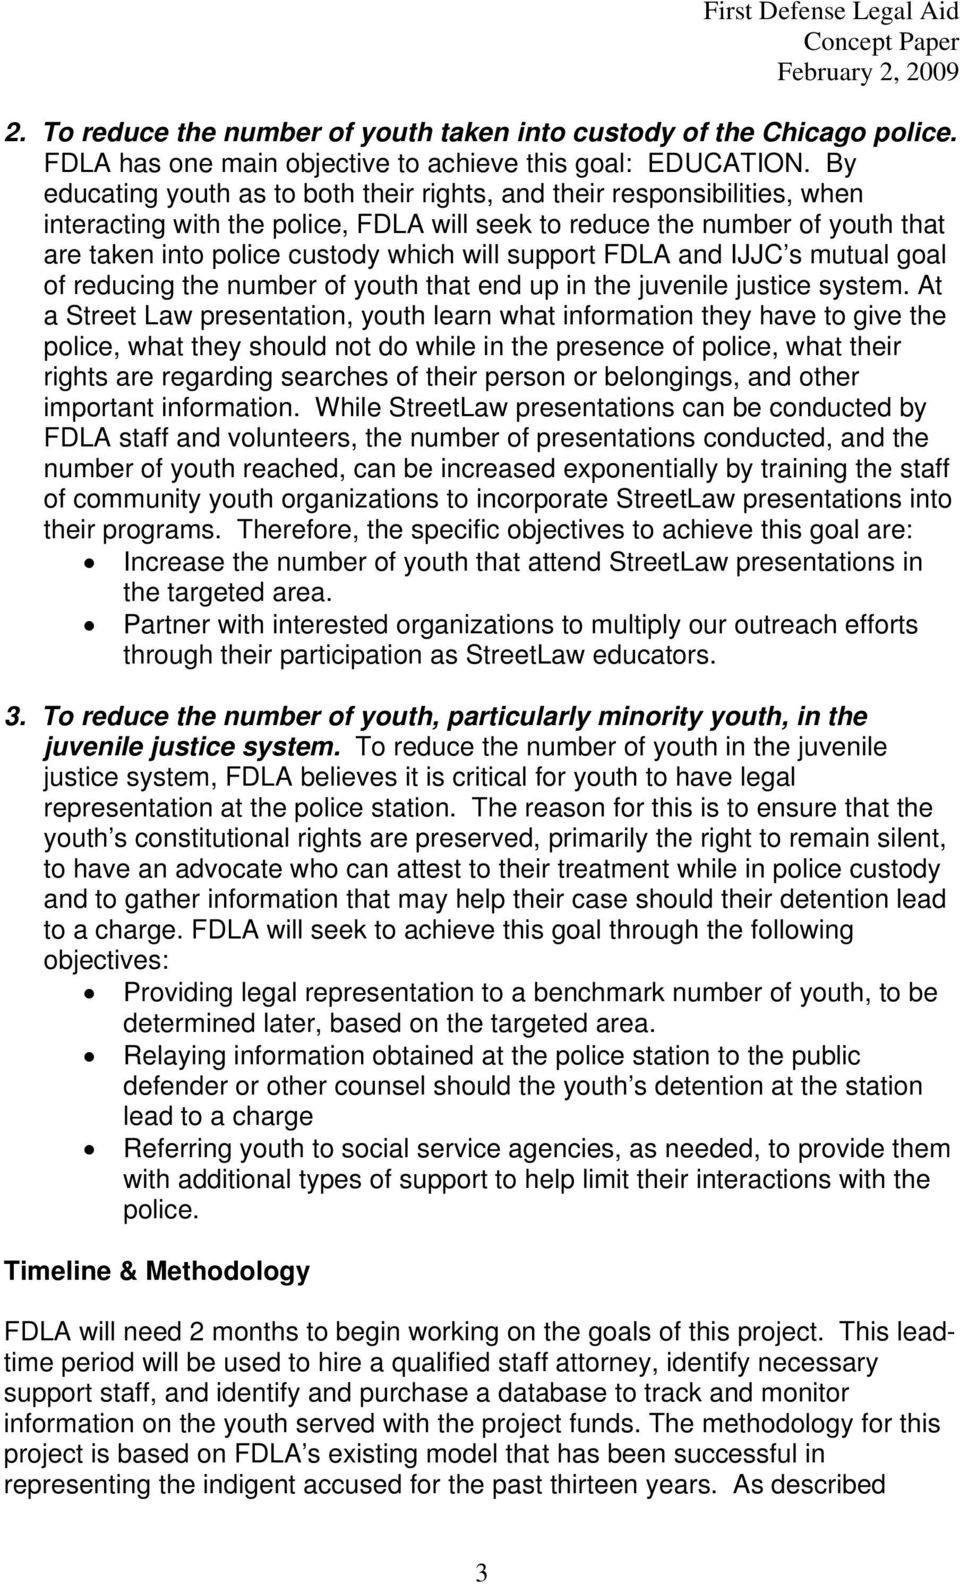 support FDLA and IJJC s mutual goal of reducing the number of youth that end up in the juvenile justice system.